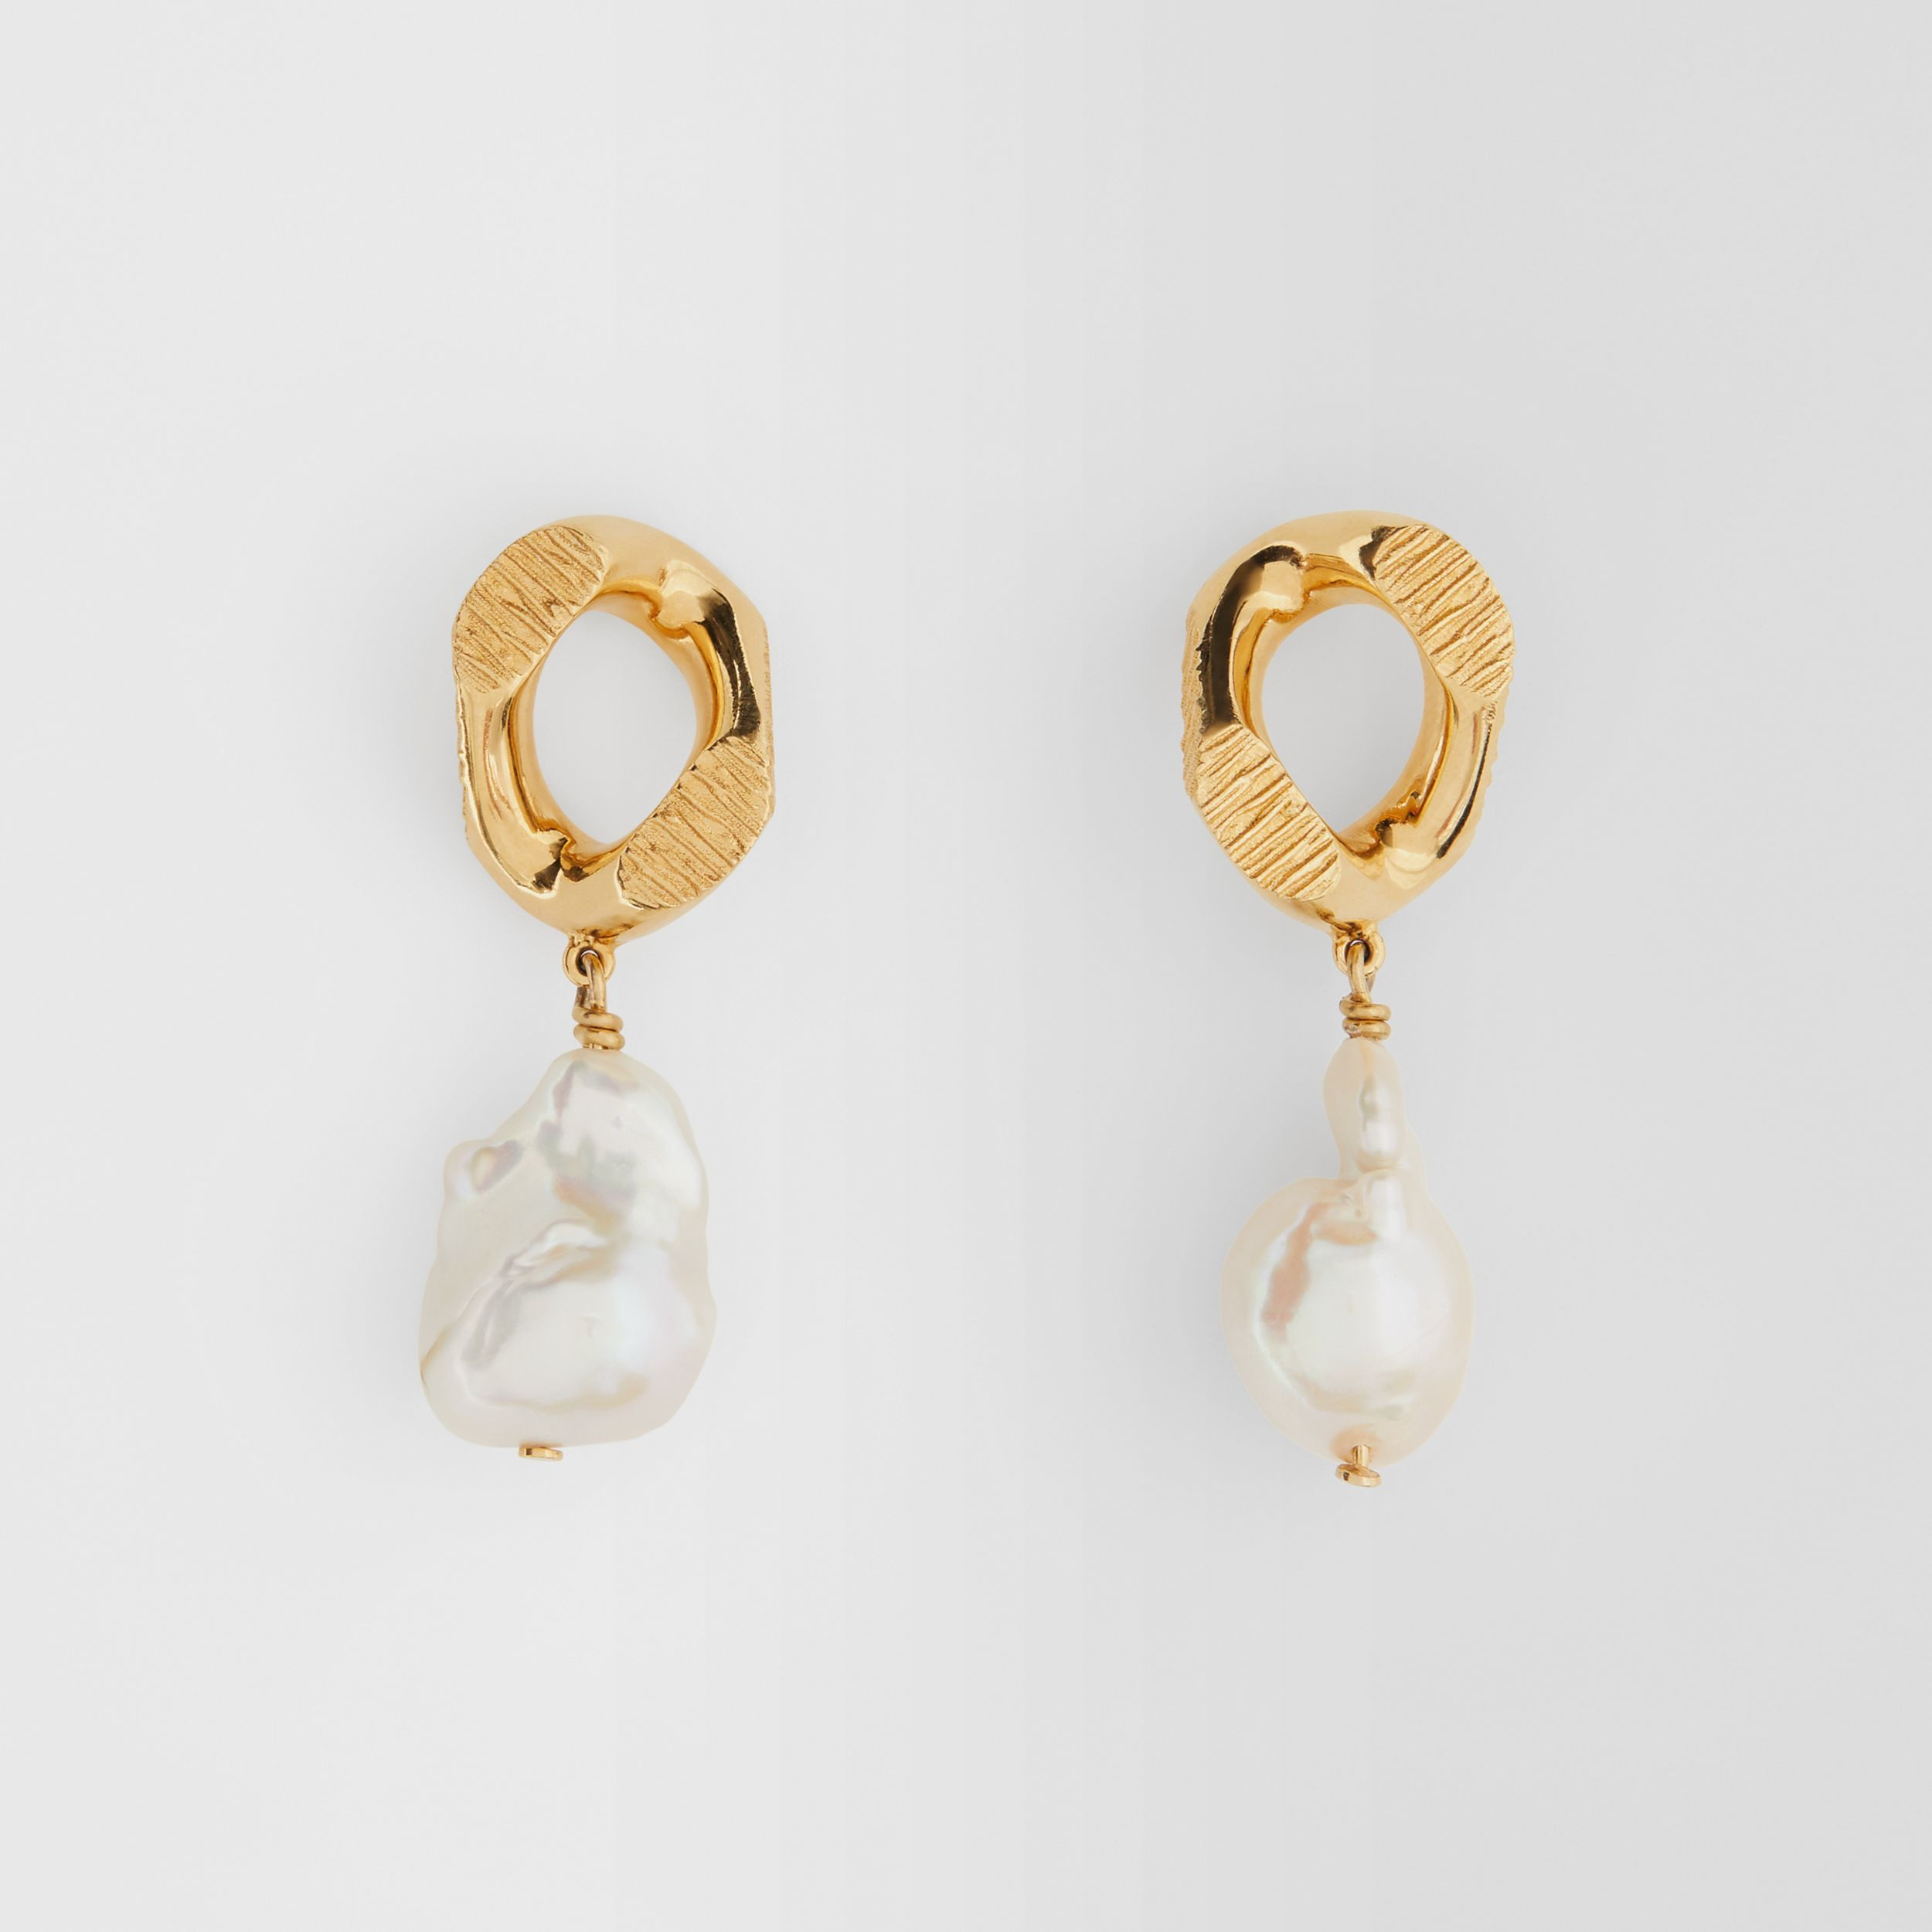 Pearl Detail Gold-plated Chain-link Earrings in Light Gold/white - Women | Burberry Singapore - 1